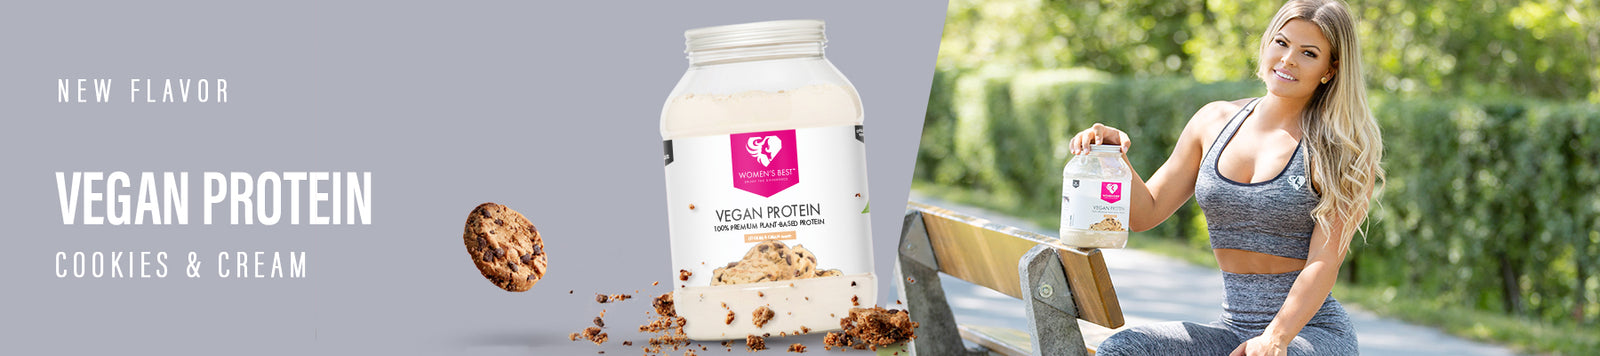 vegan protein launch